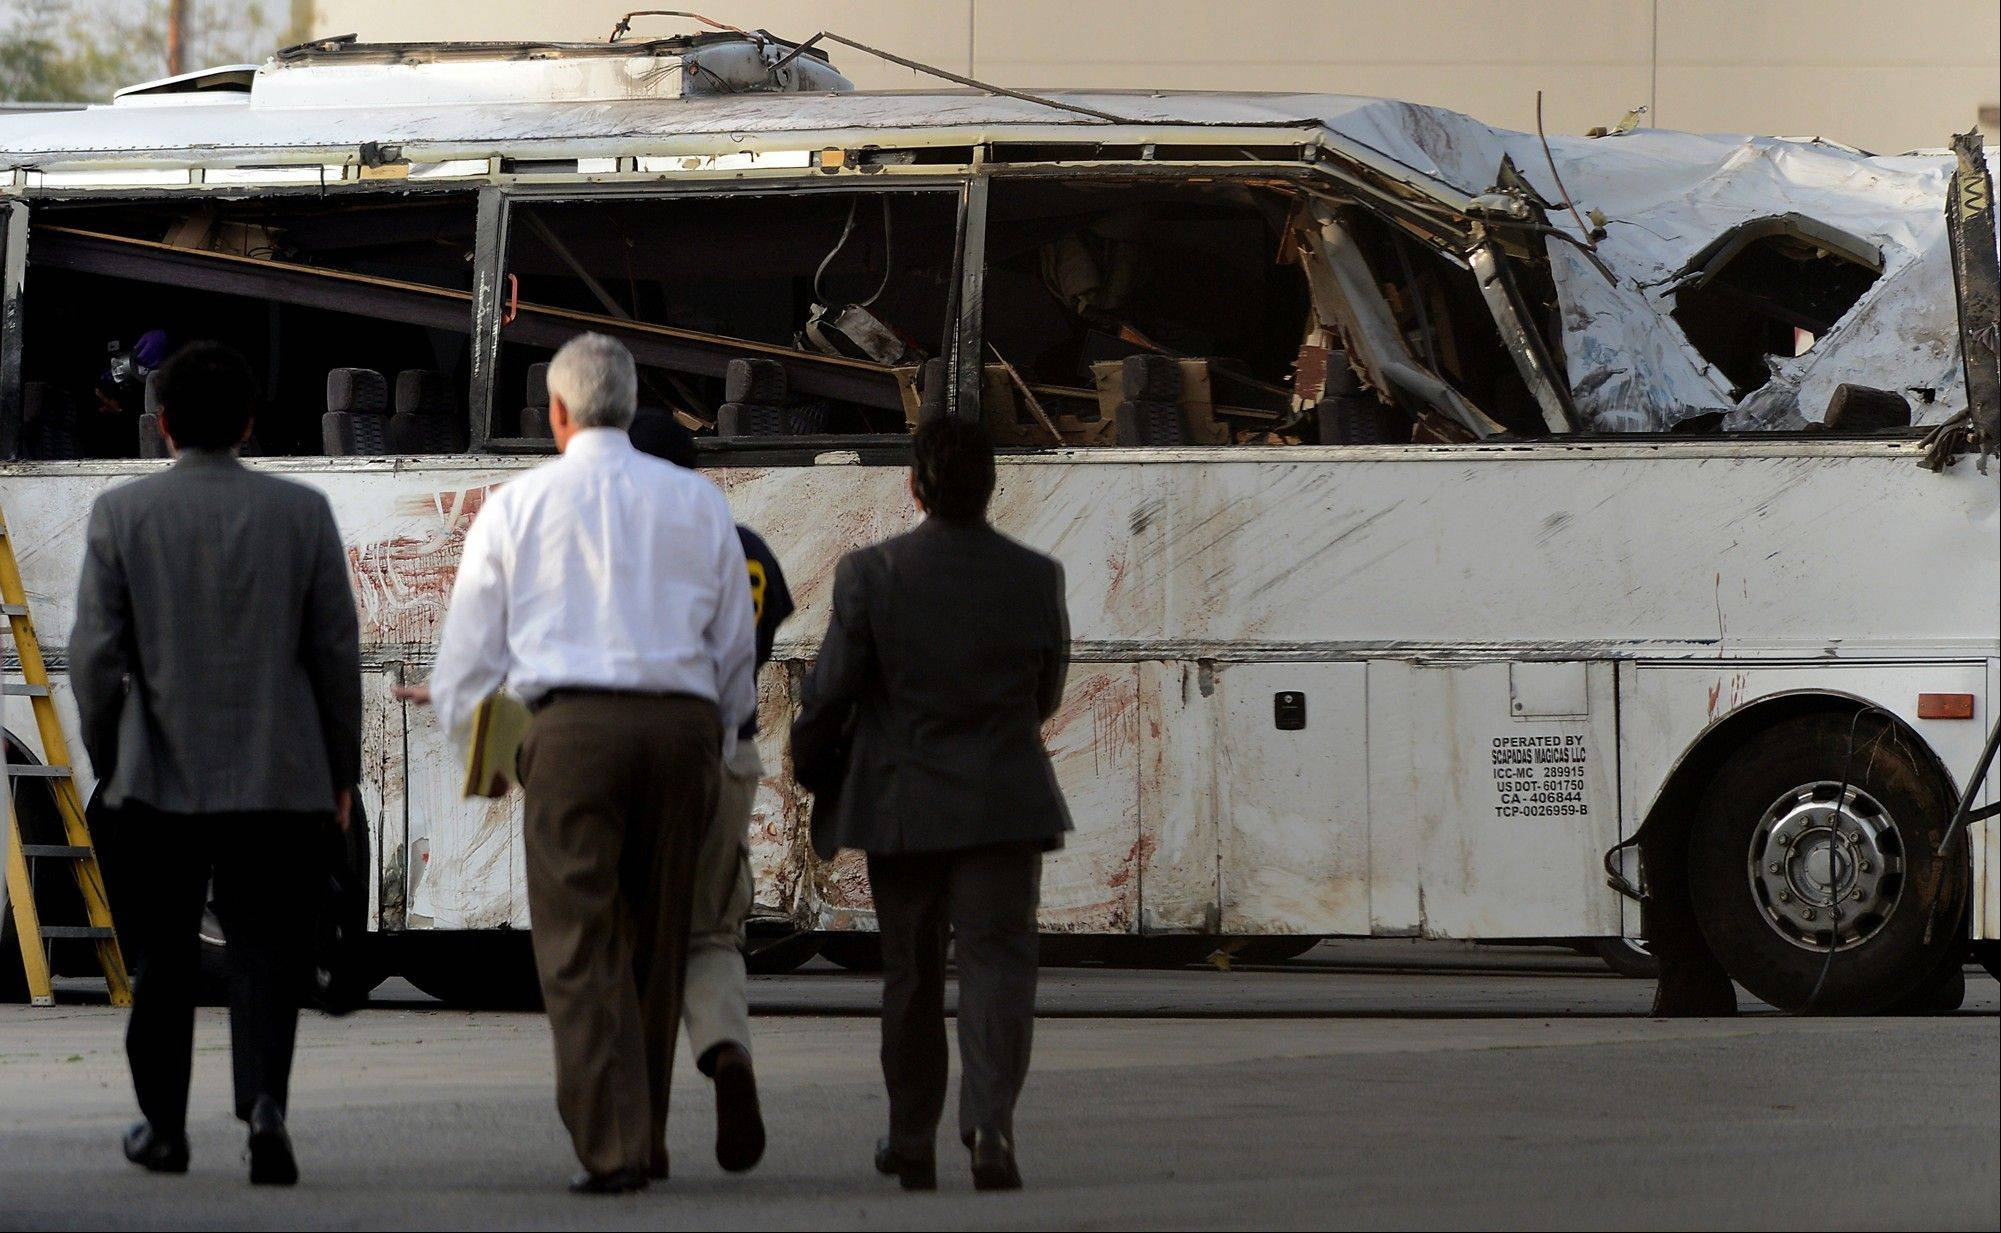 National Transportation Safety Board members walk toward the bus crash site Tuesday, Feb. 5, 2013, in Ontario, Calif., before giving an update on the investigation of Sunday's tour bus crash near Yucaipa that killed eight people.